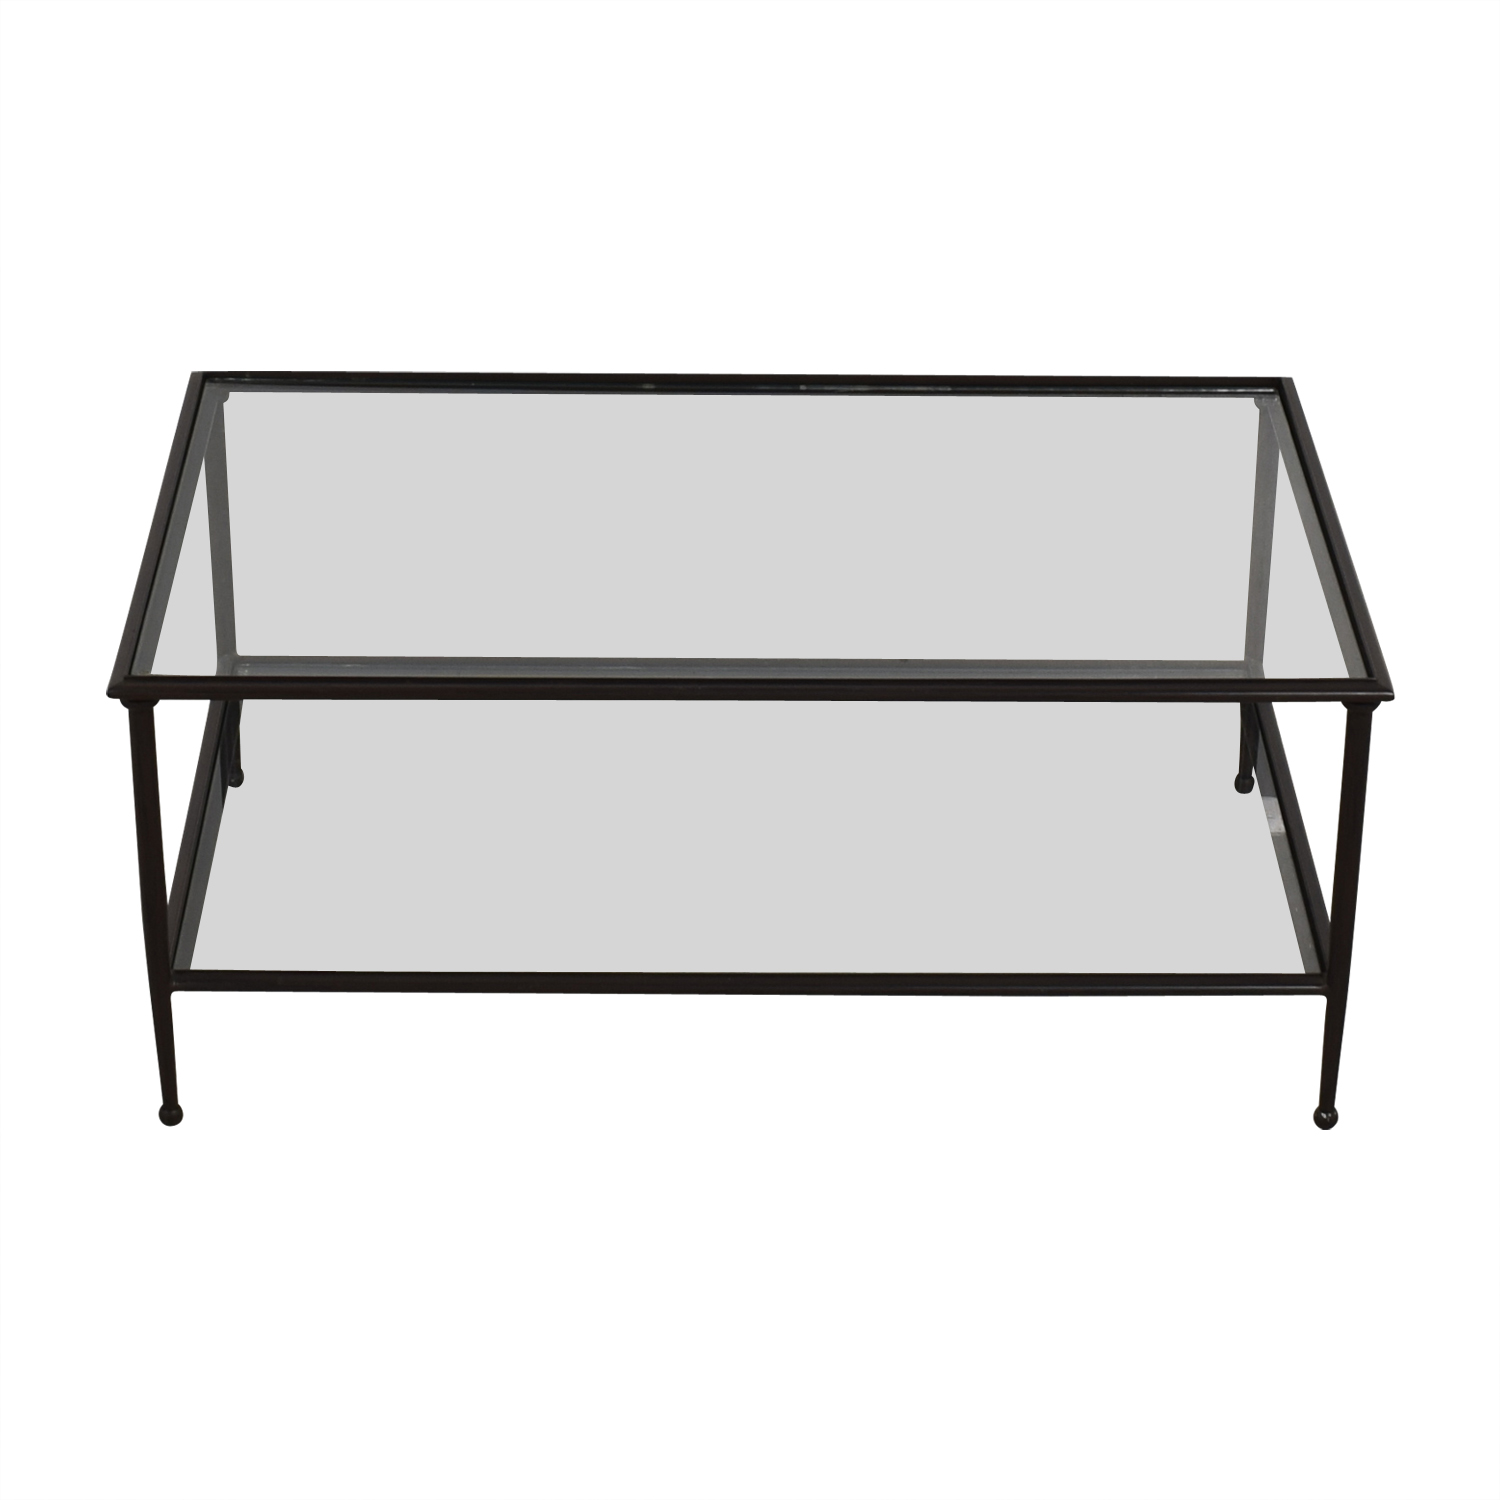 shop Crate & Barrel Crate & Barrel Glass and Black Coffee Table online